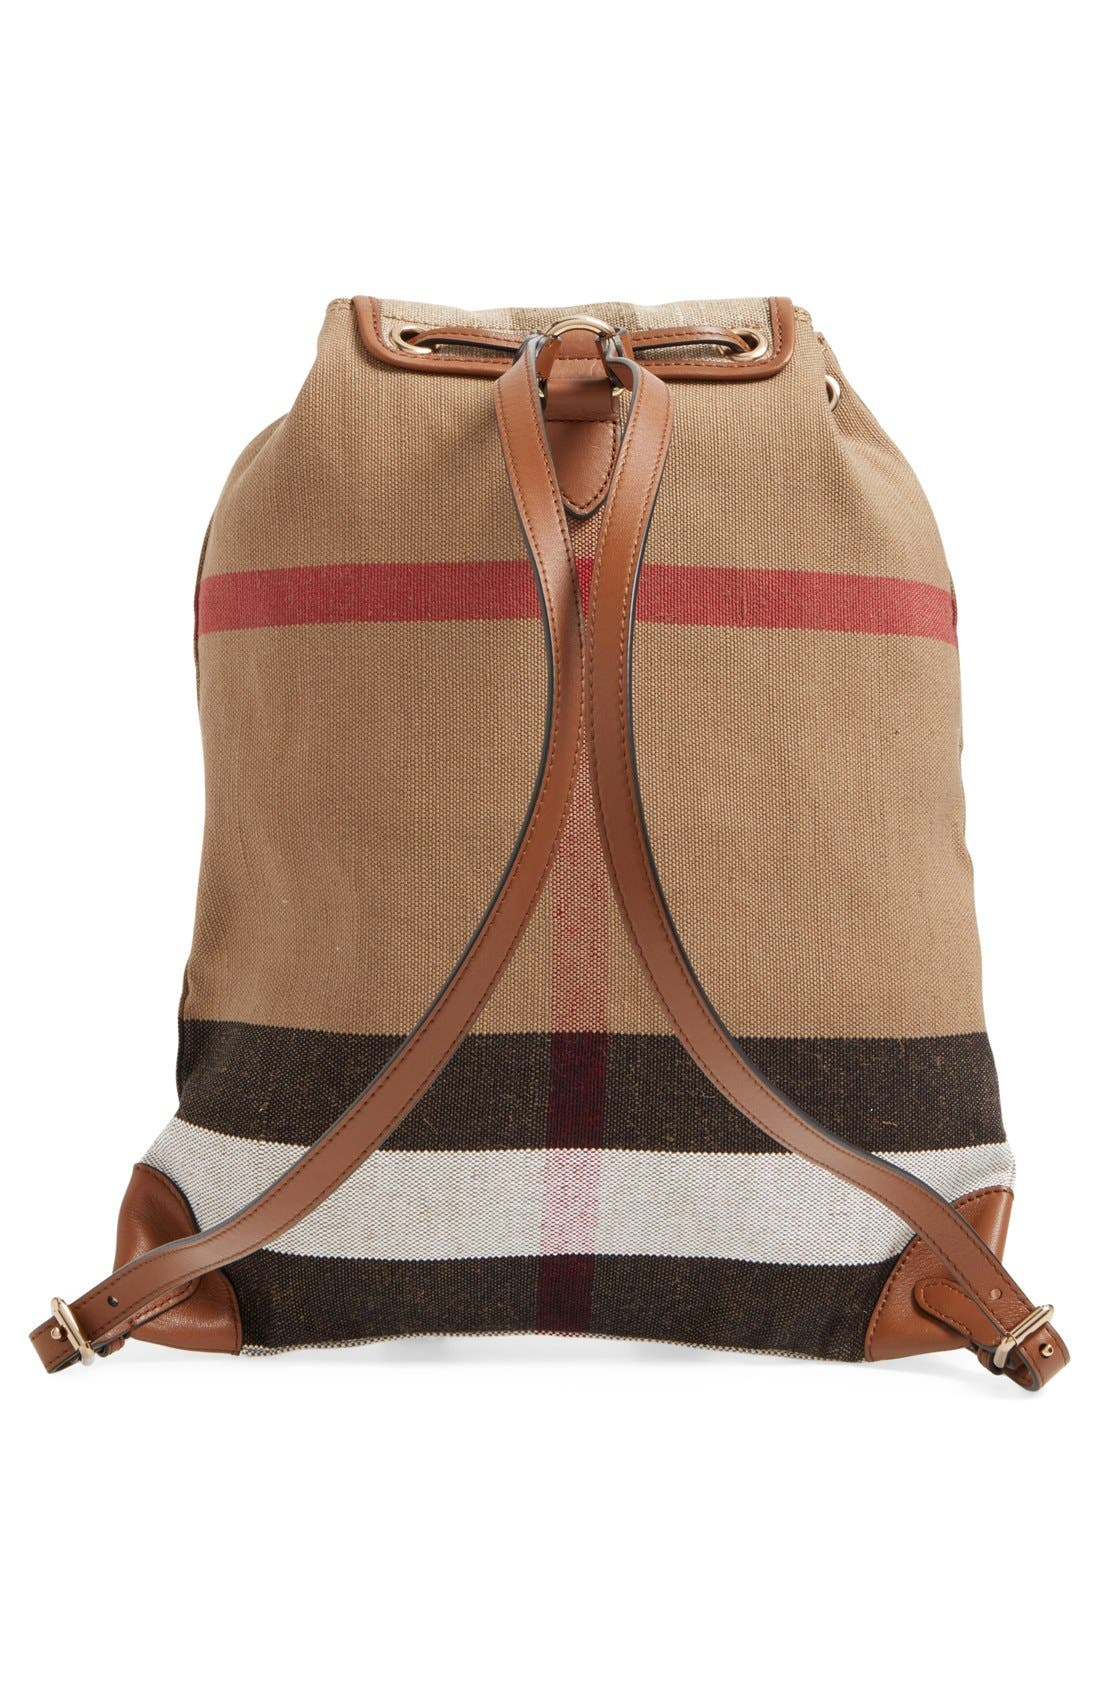 'Chiltern' Check Print Backpack,                             Alternate thumbnail 5, color,                             200